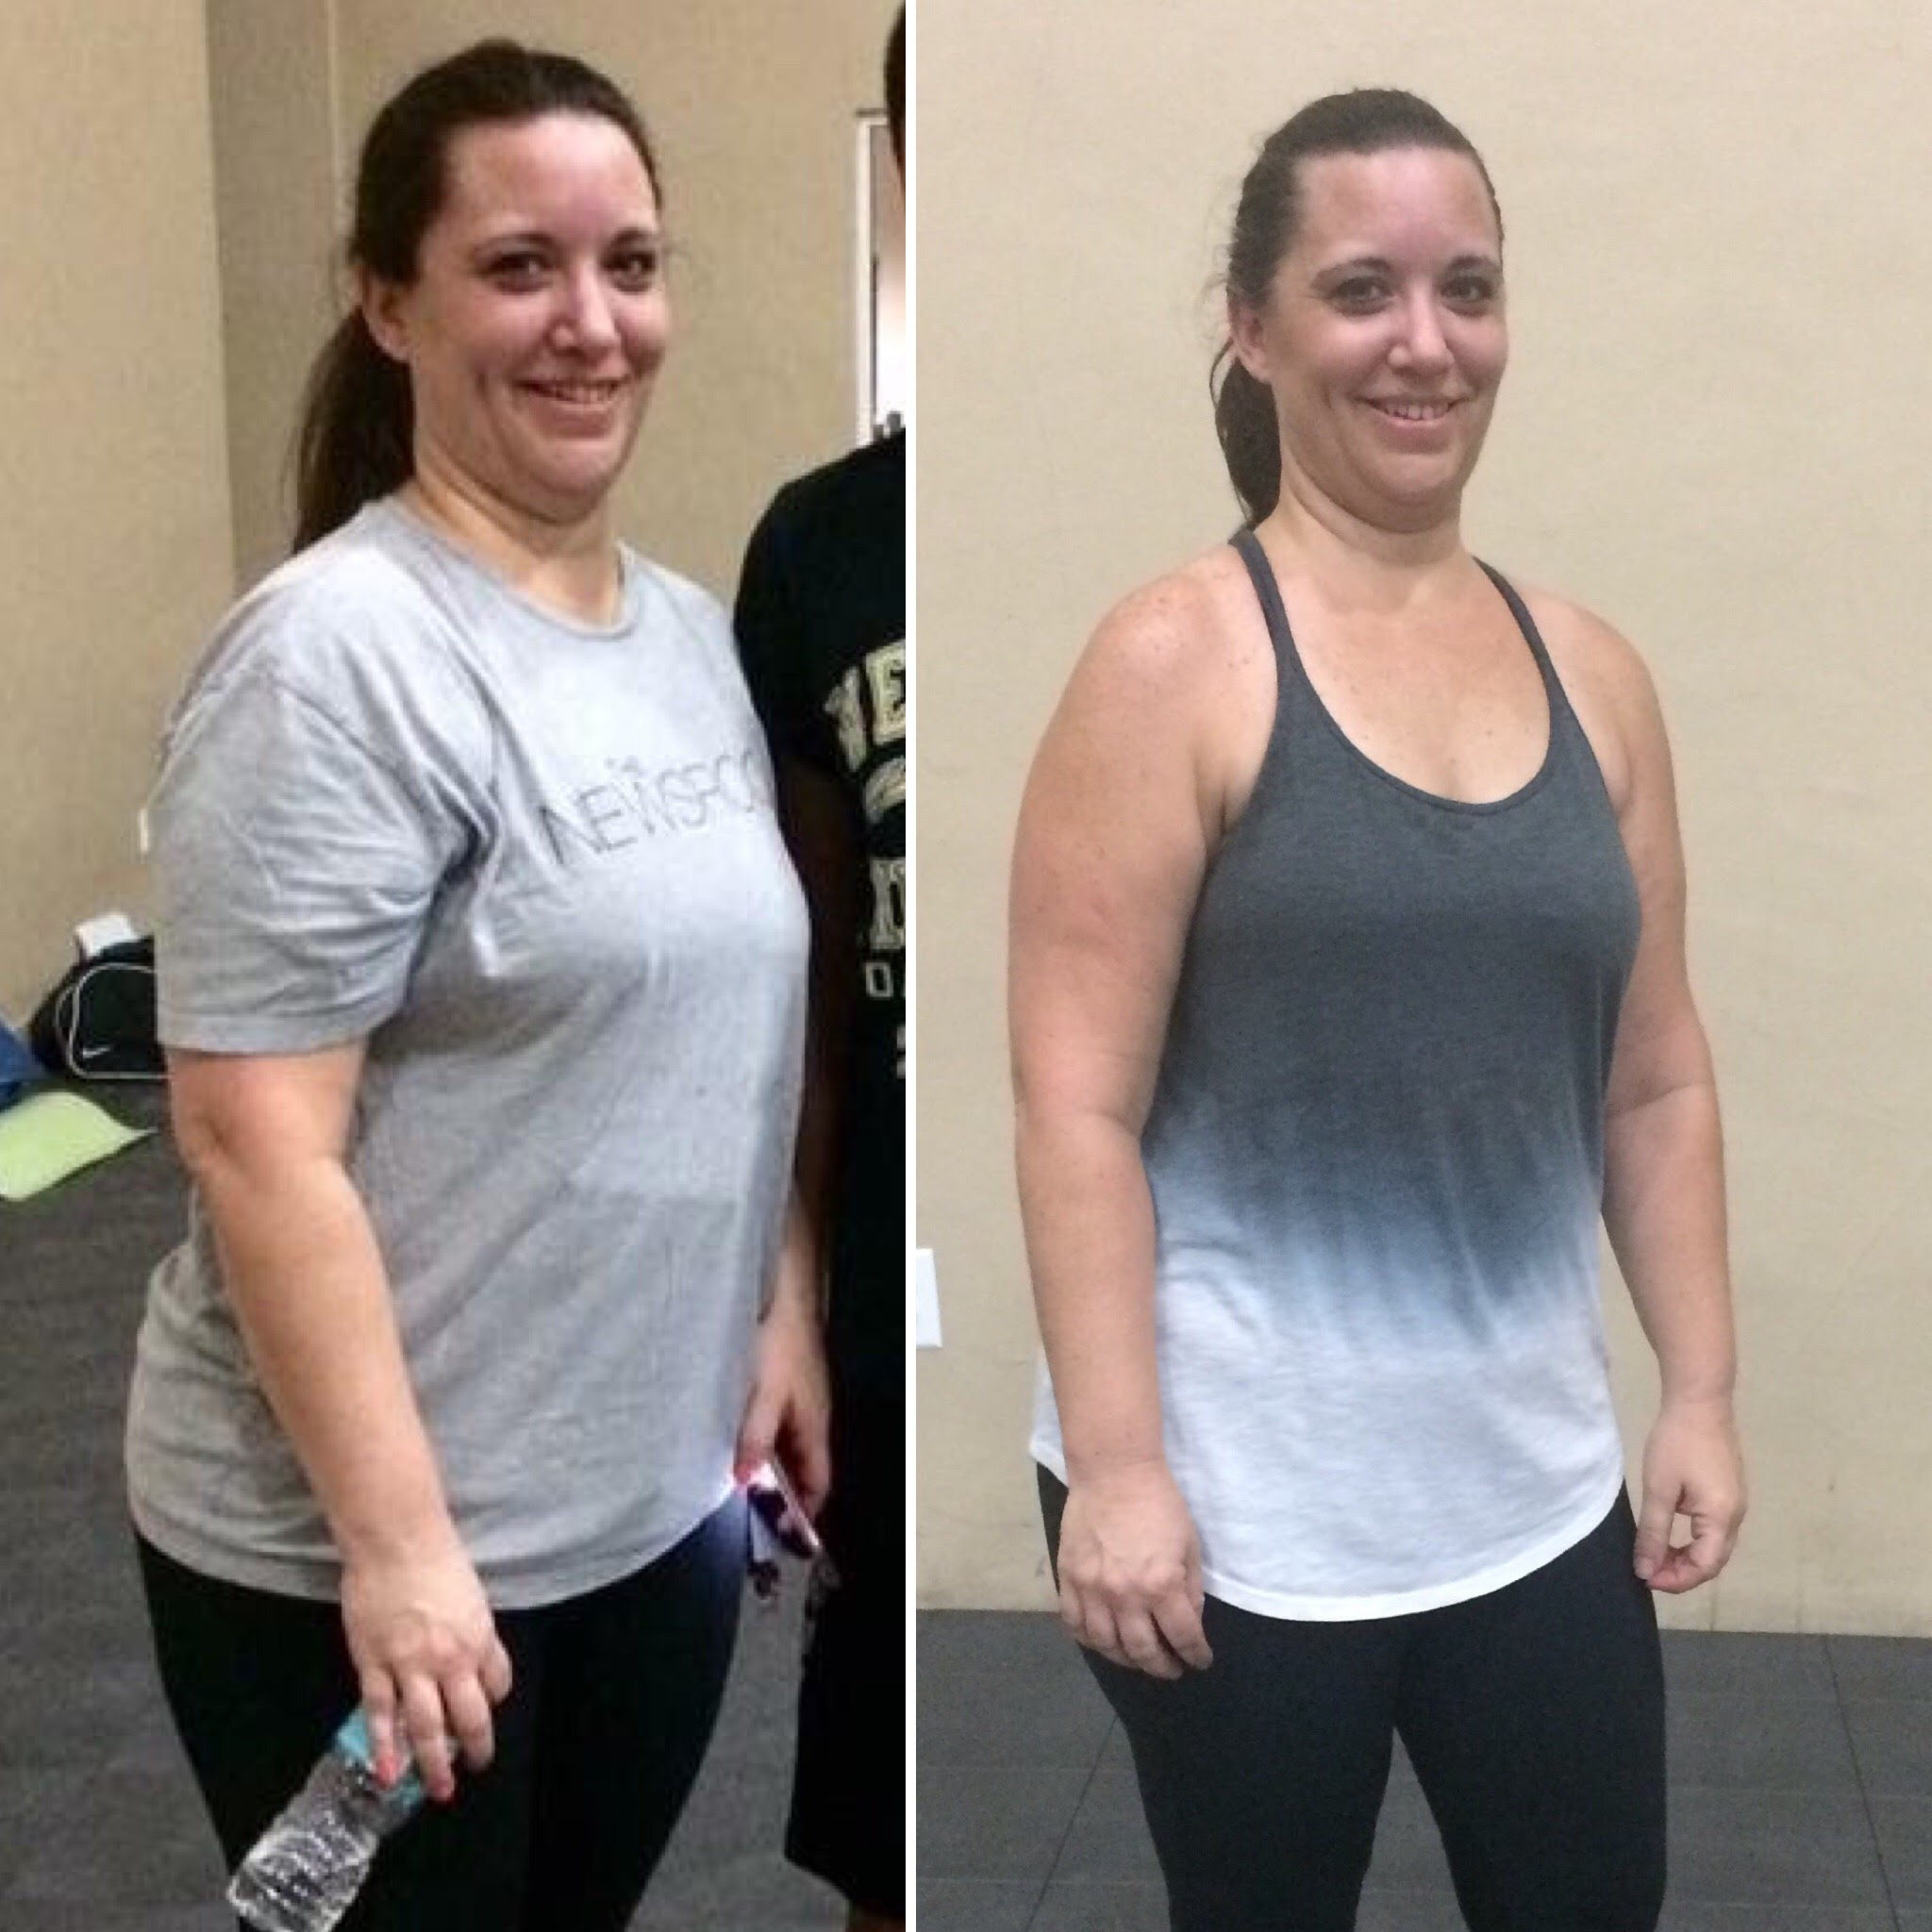 Lisa lost about 20 lbs. working with me in about 3 months.jpg